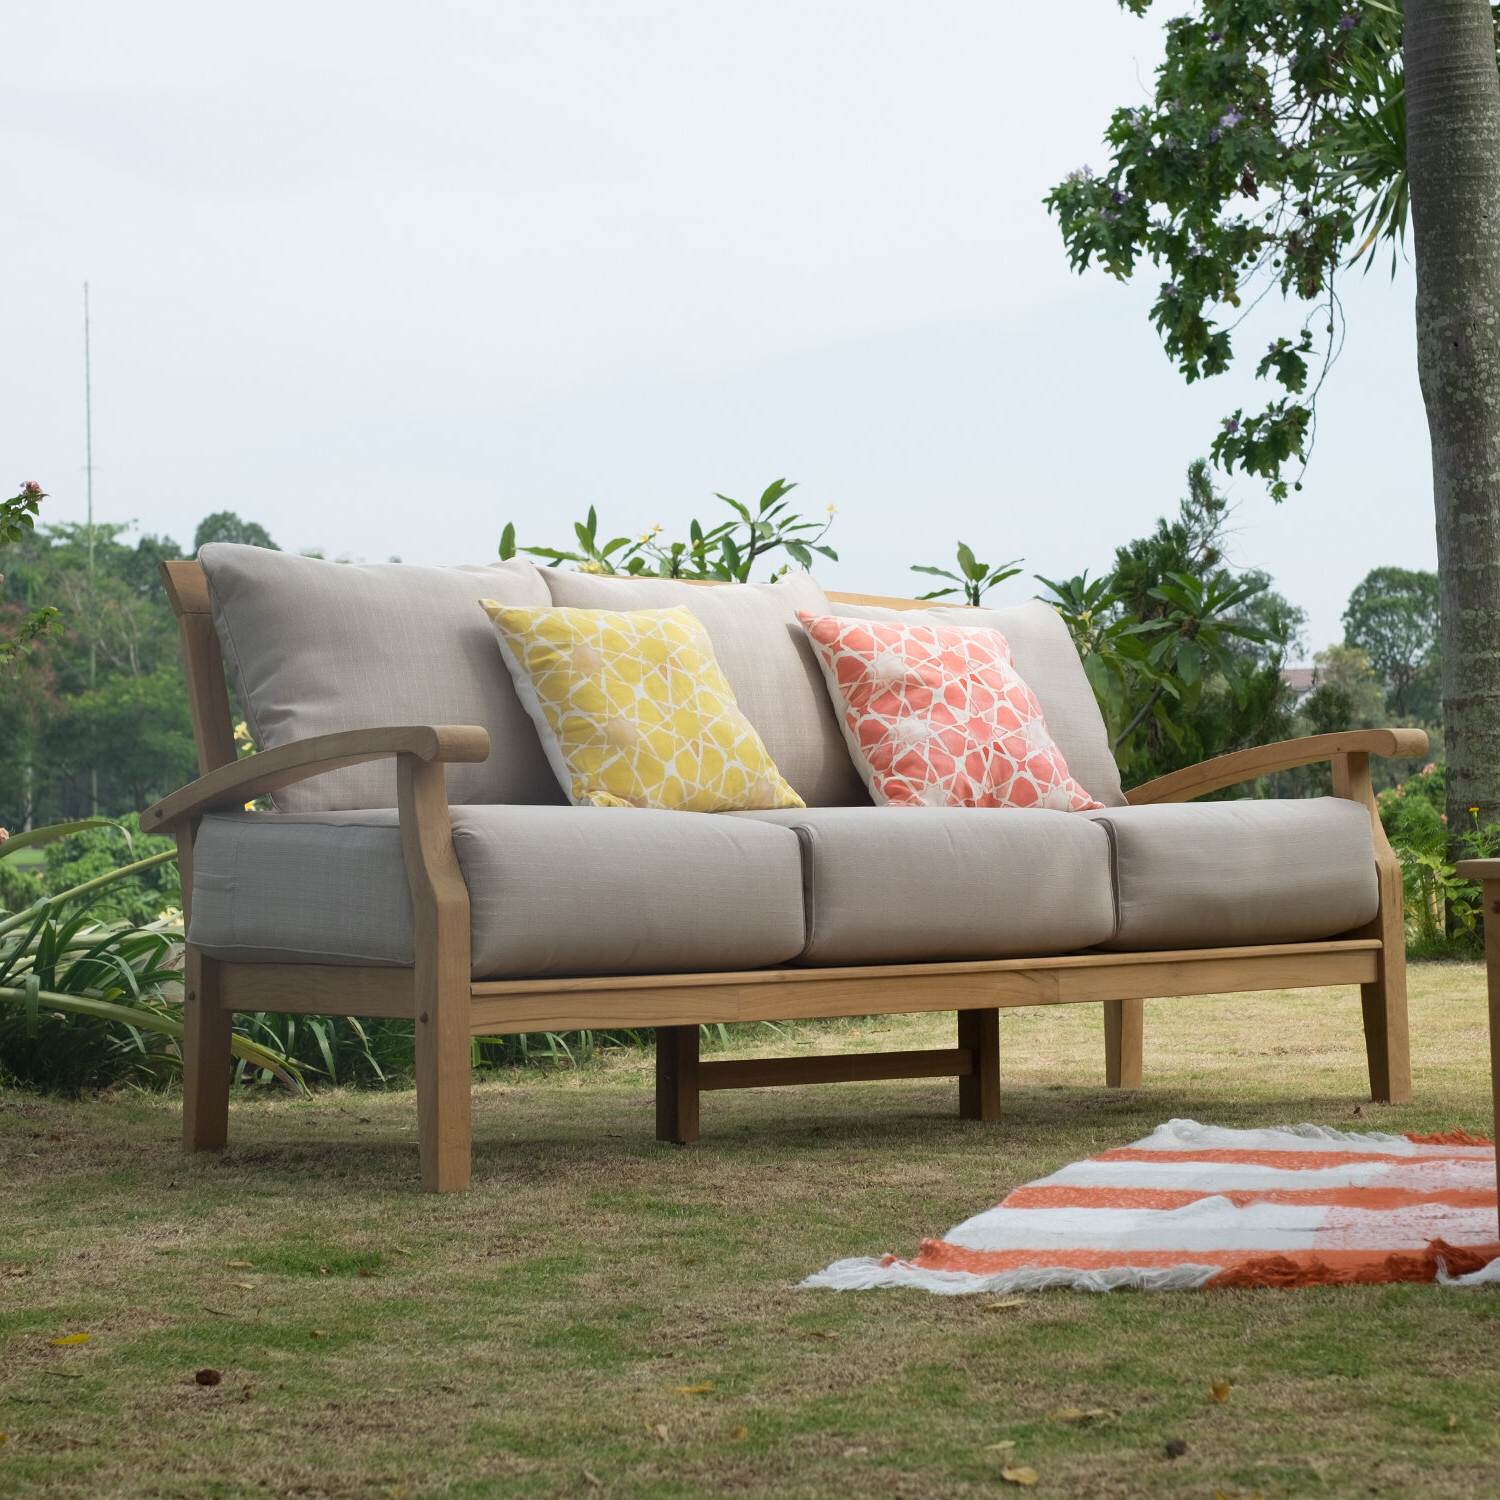 Ellanti Teak Patio Daybeds With Cushions Intended For Famous Summerton Teak Patio Sofa With Cushions (View 6 of 20)